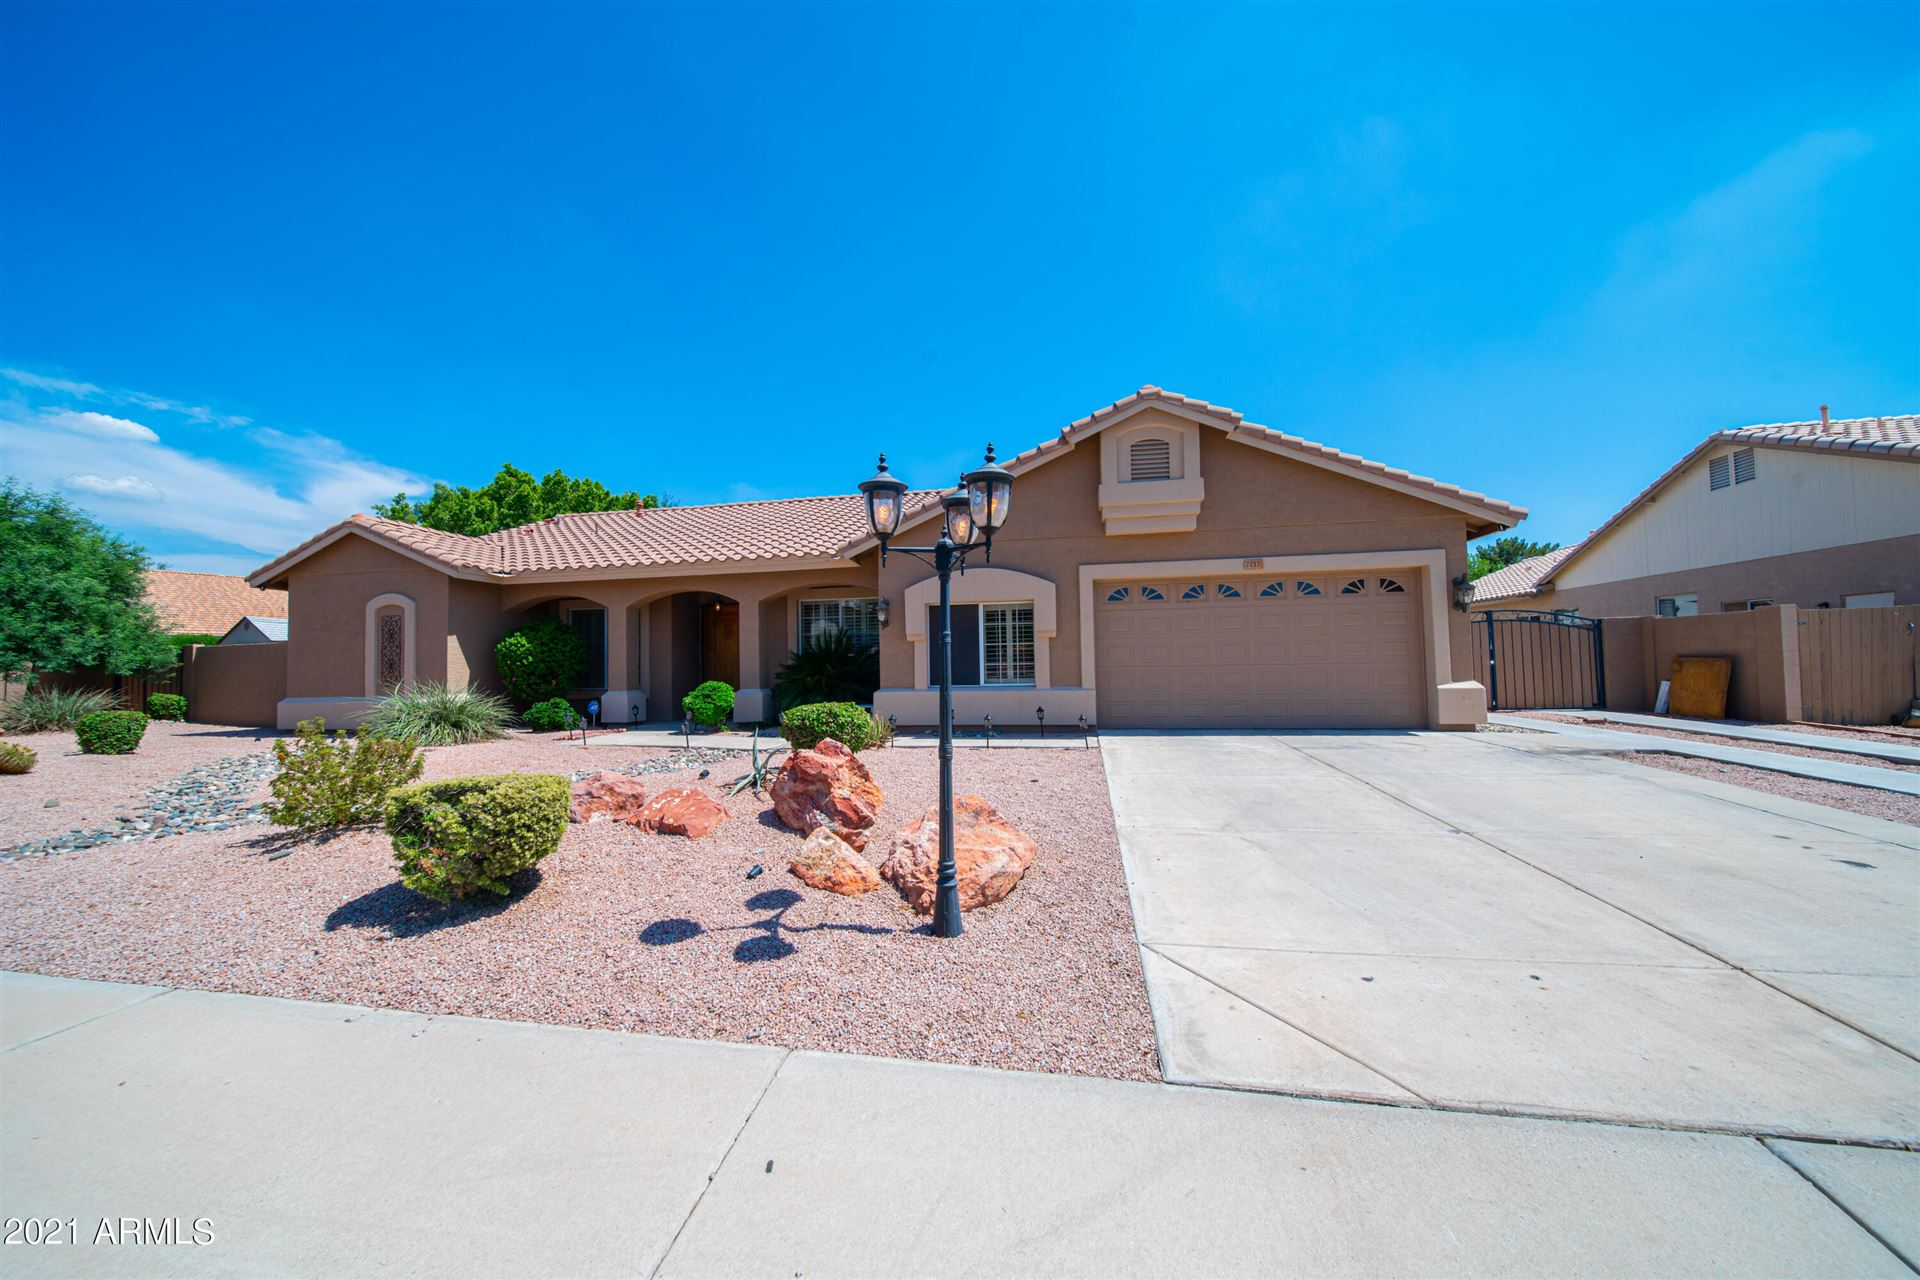 Photo of 7717 W COUNTRY GABLES Drive, Peoria, AZ 85381 (MLS # 6267480)